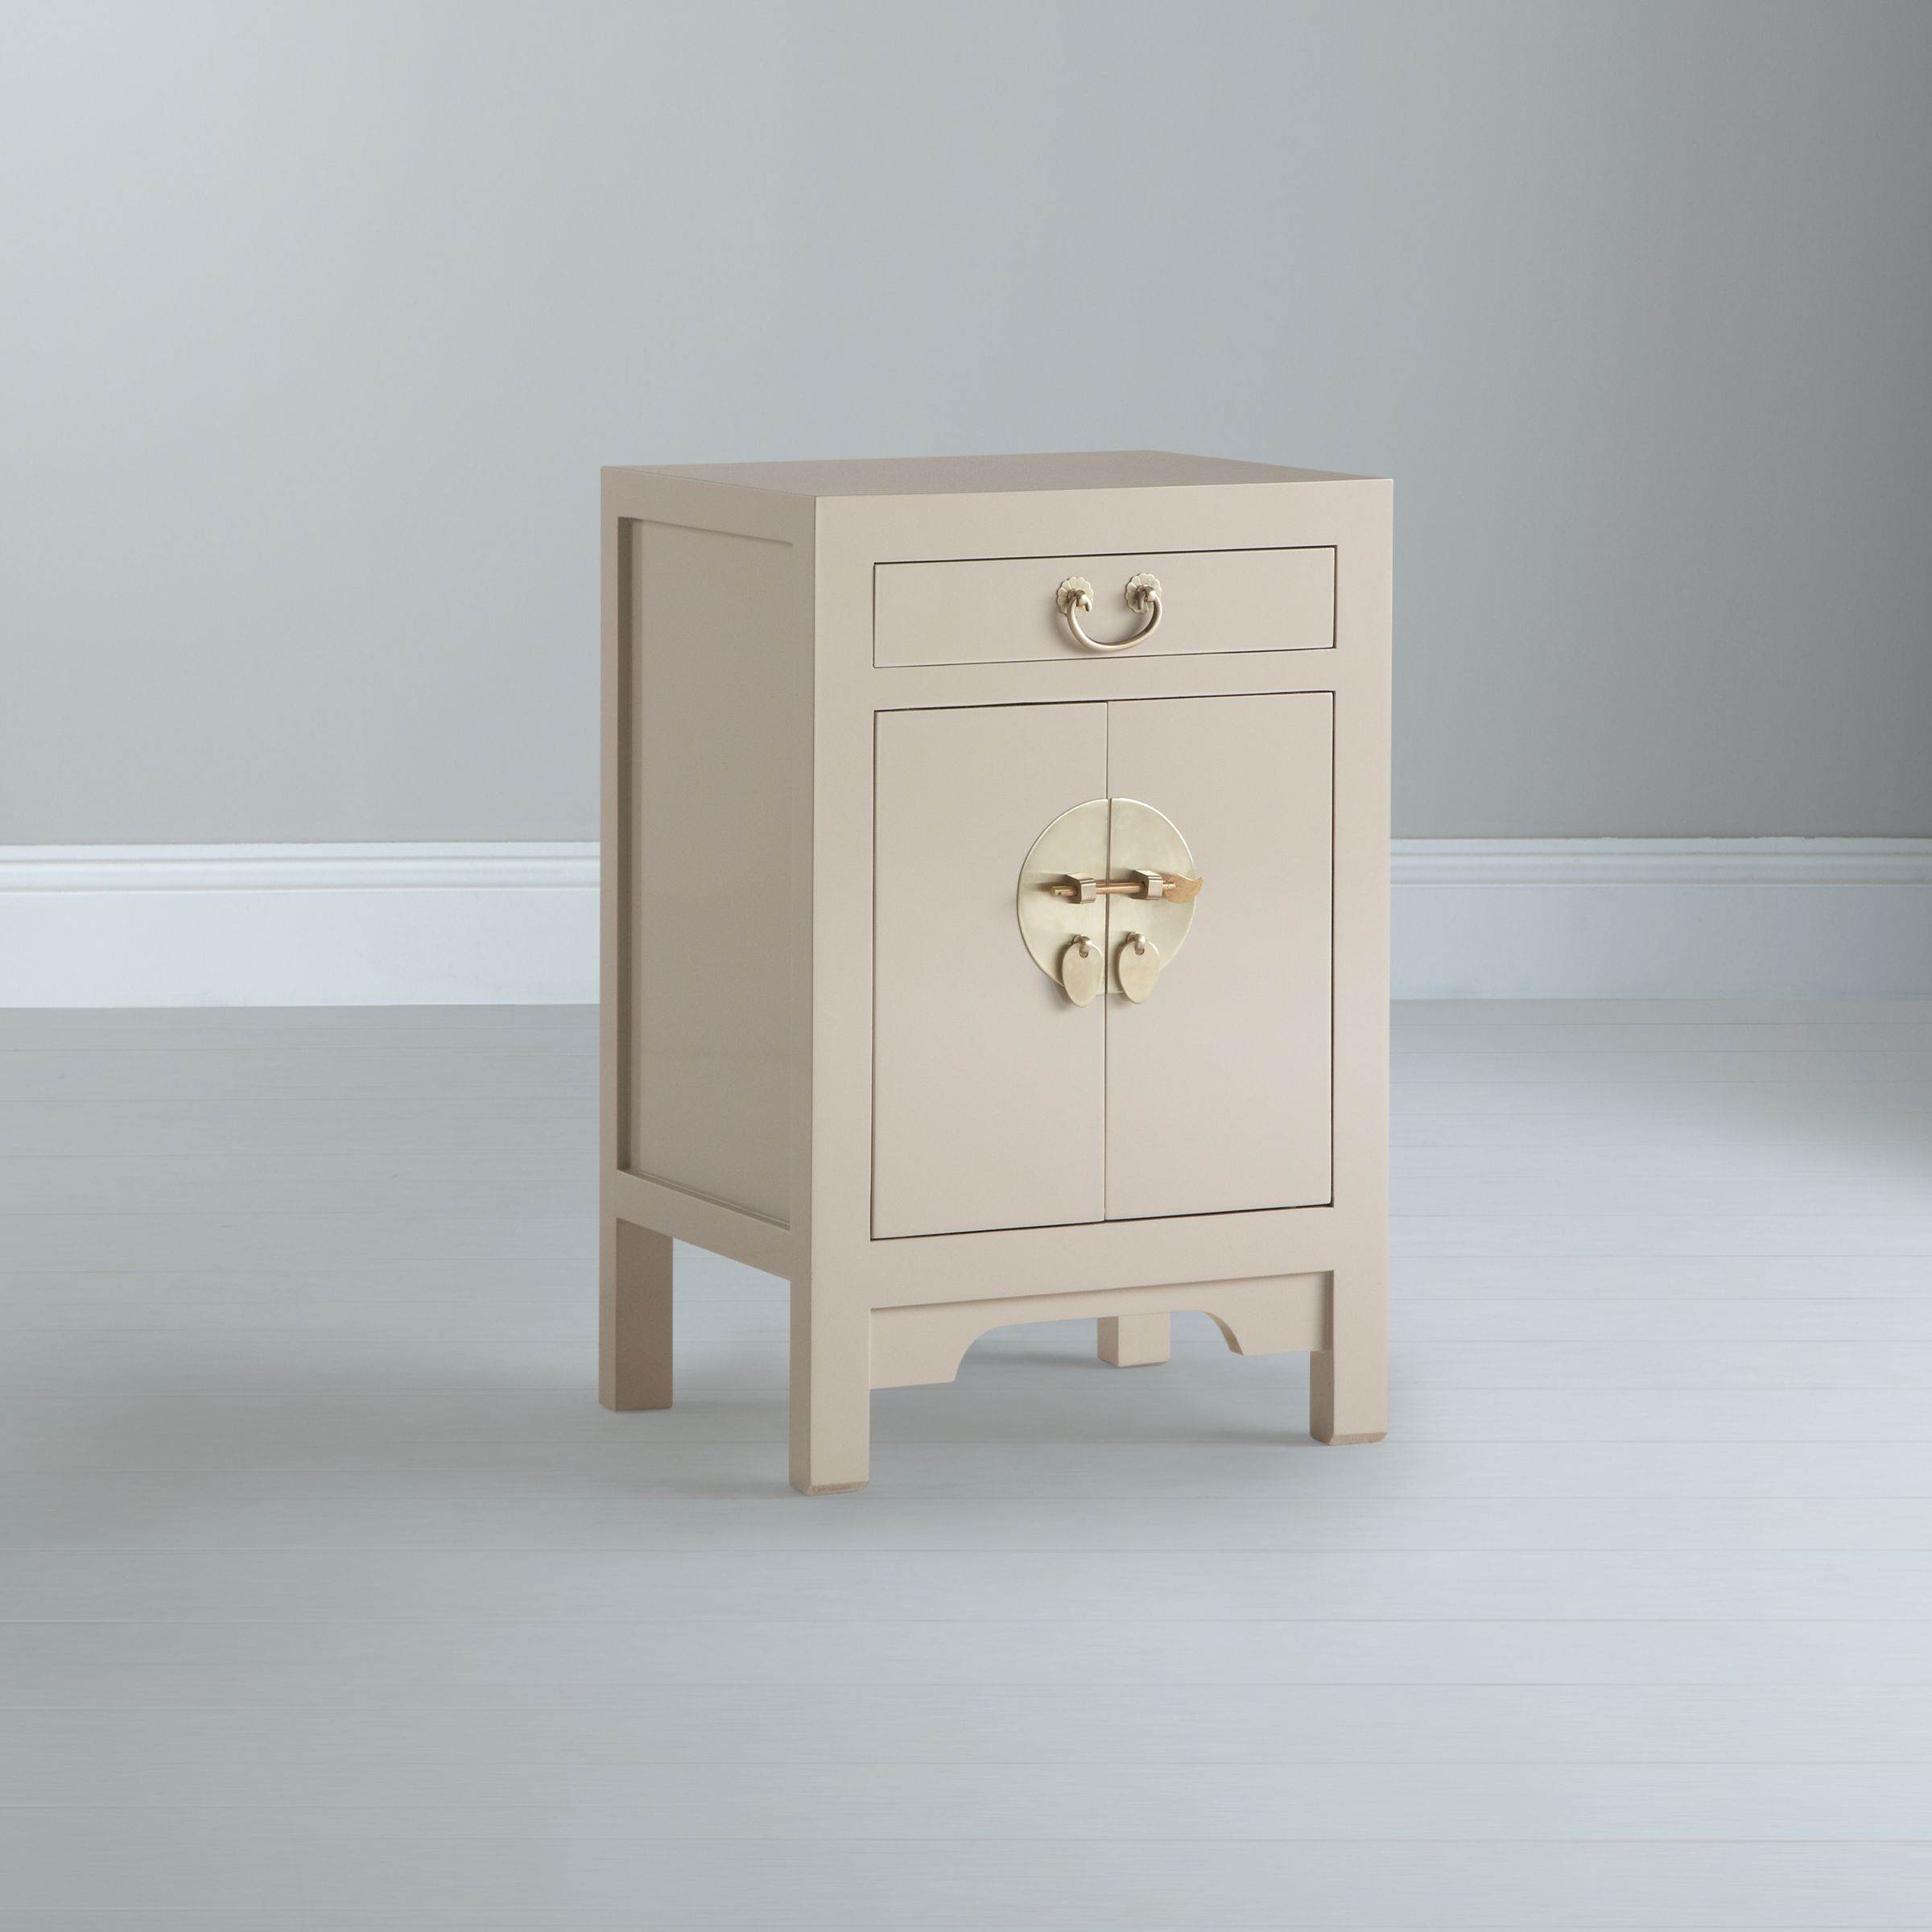 Chinese furniture shop for cheap furniture and save online for John lewis chinese furniture